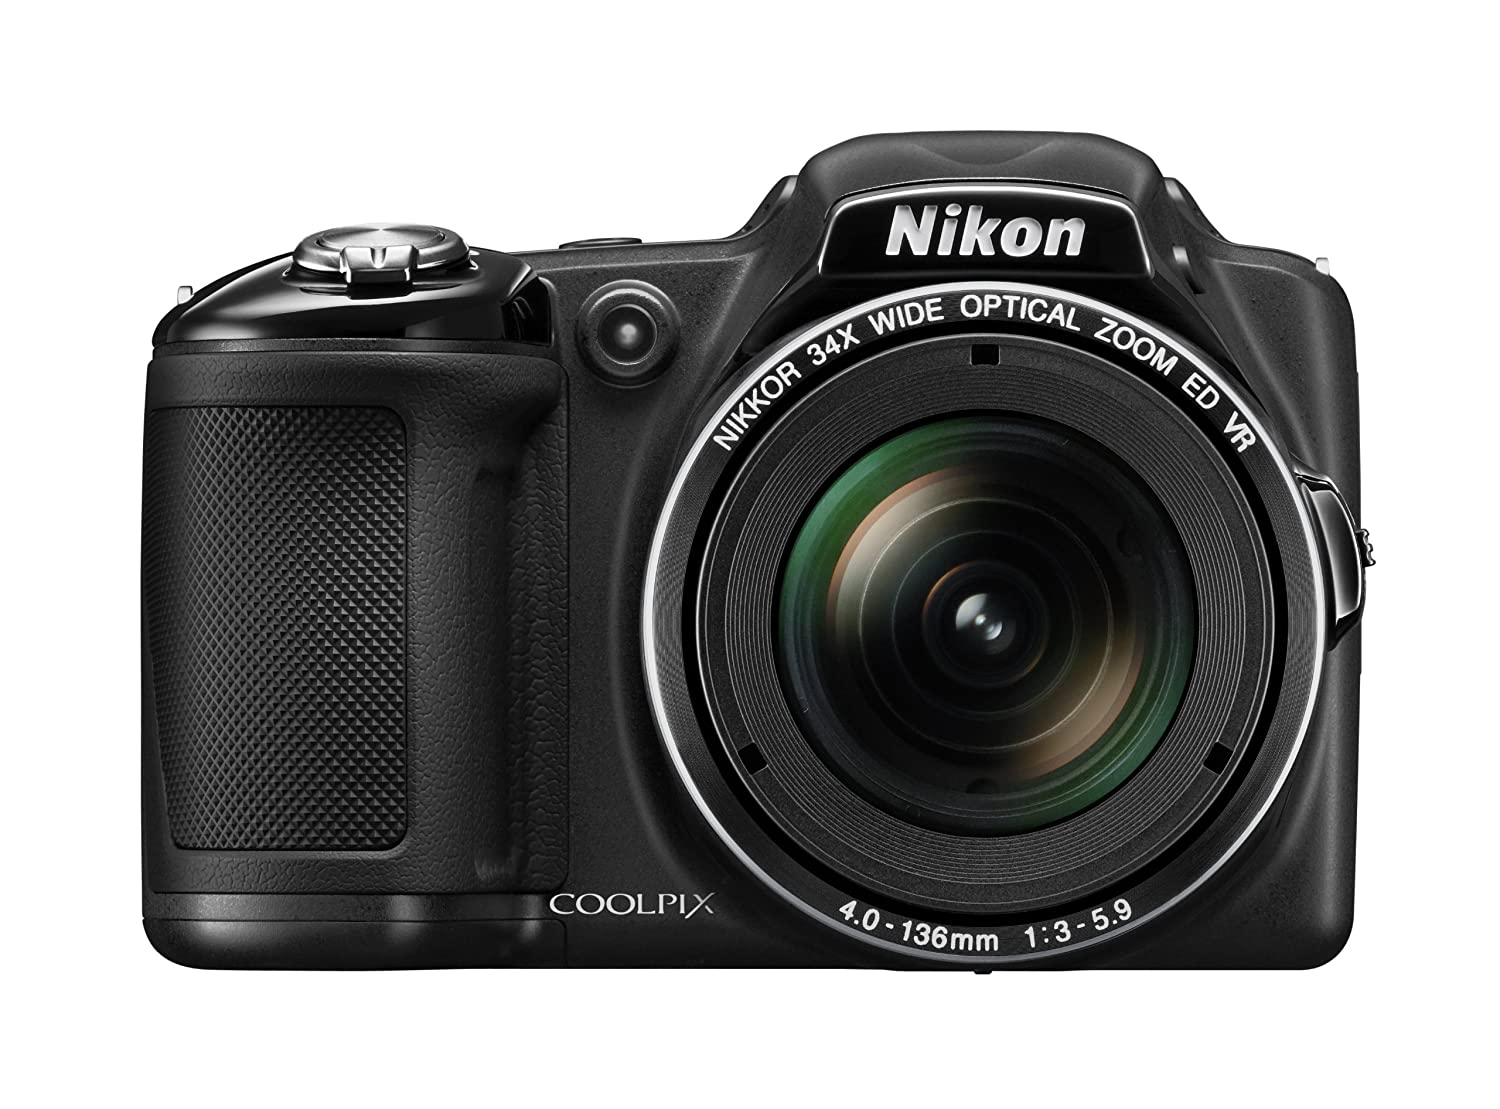 Nikon COOLPIX L830 16 MP CMOS Digital Camera with 34x Zoom NIKKOR Lens and Full 1080p HD Video (Black)